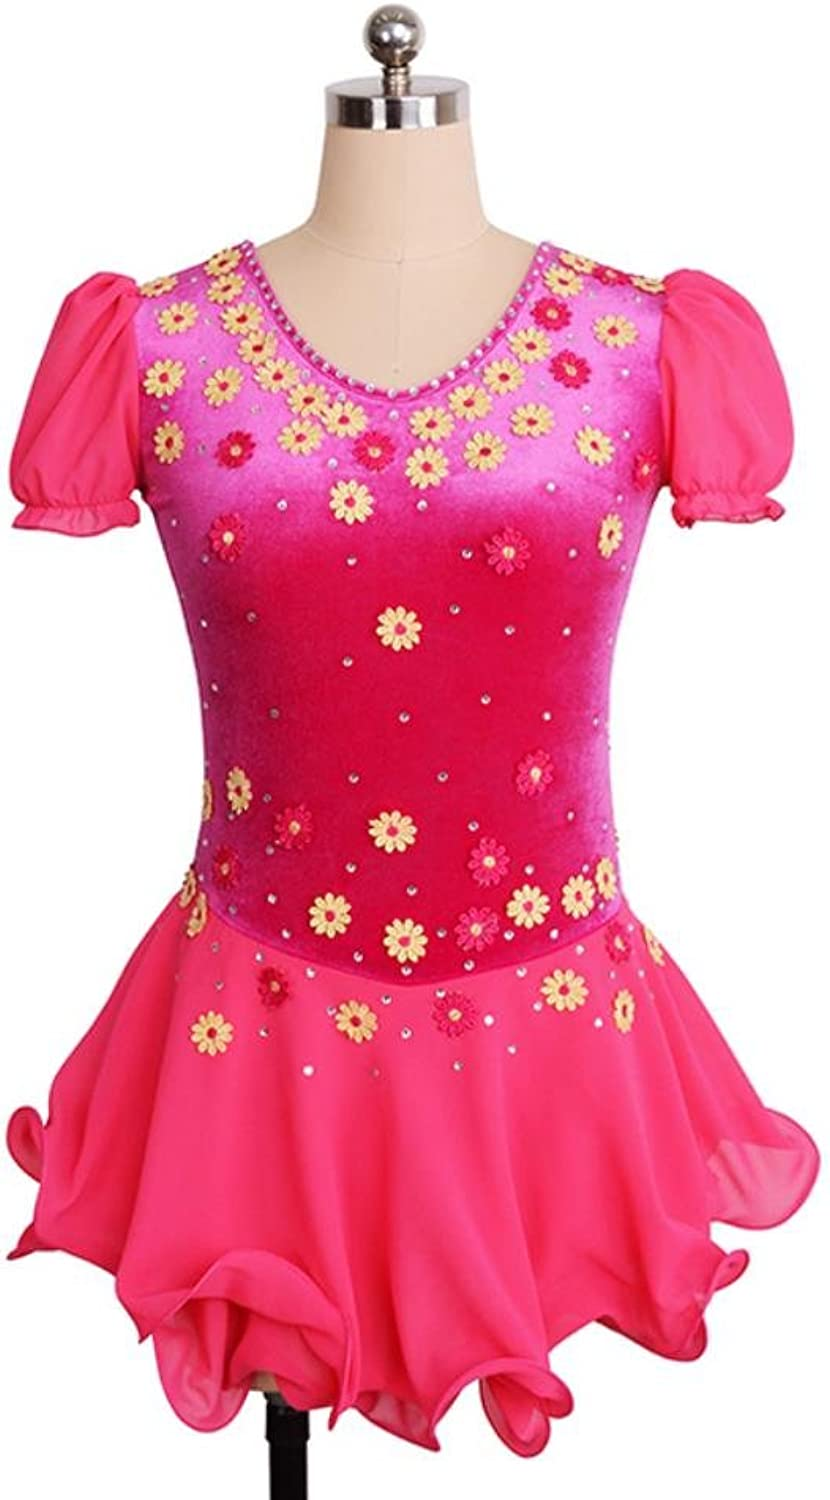 Heart&M Girl's Women's Ice Skating Dress Figure Skating Competition Performance Dress Floral Silk Velvet Short Sleeve Fushcia